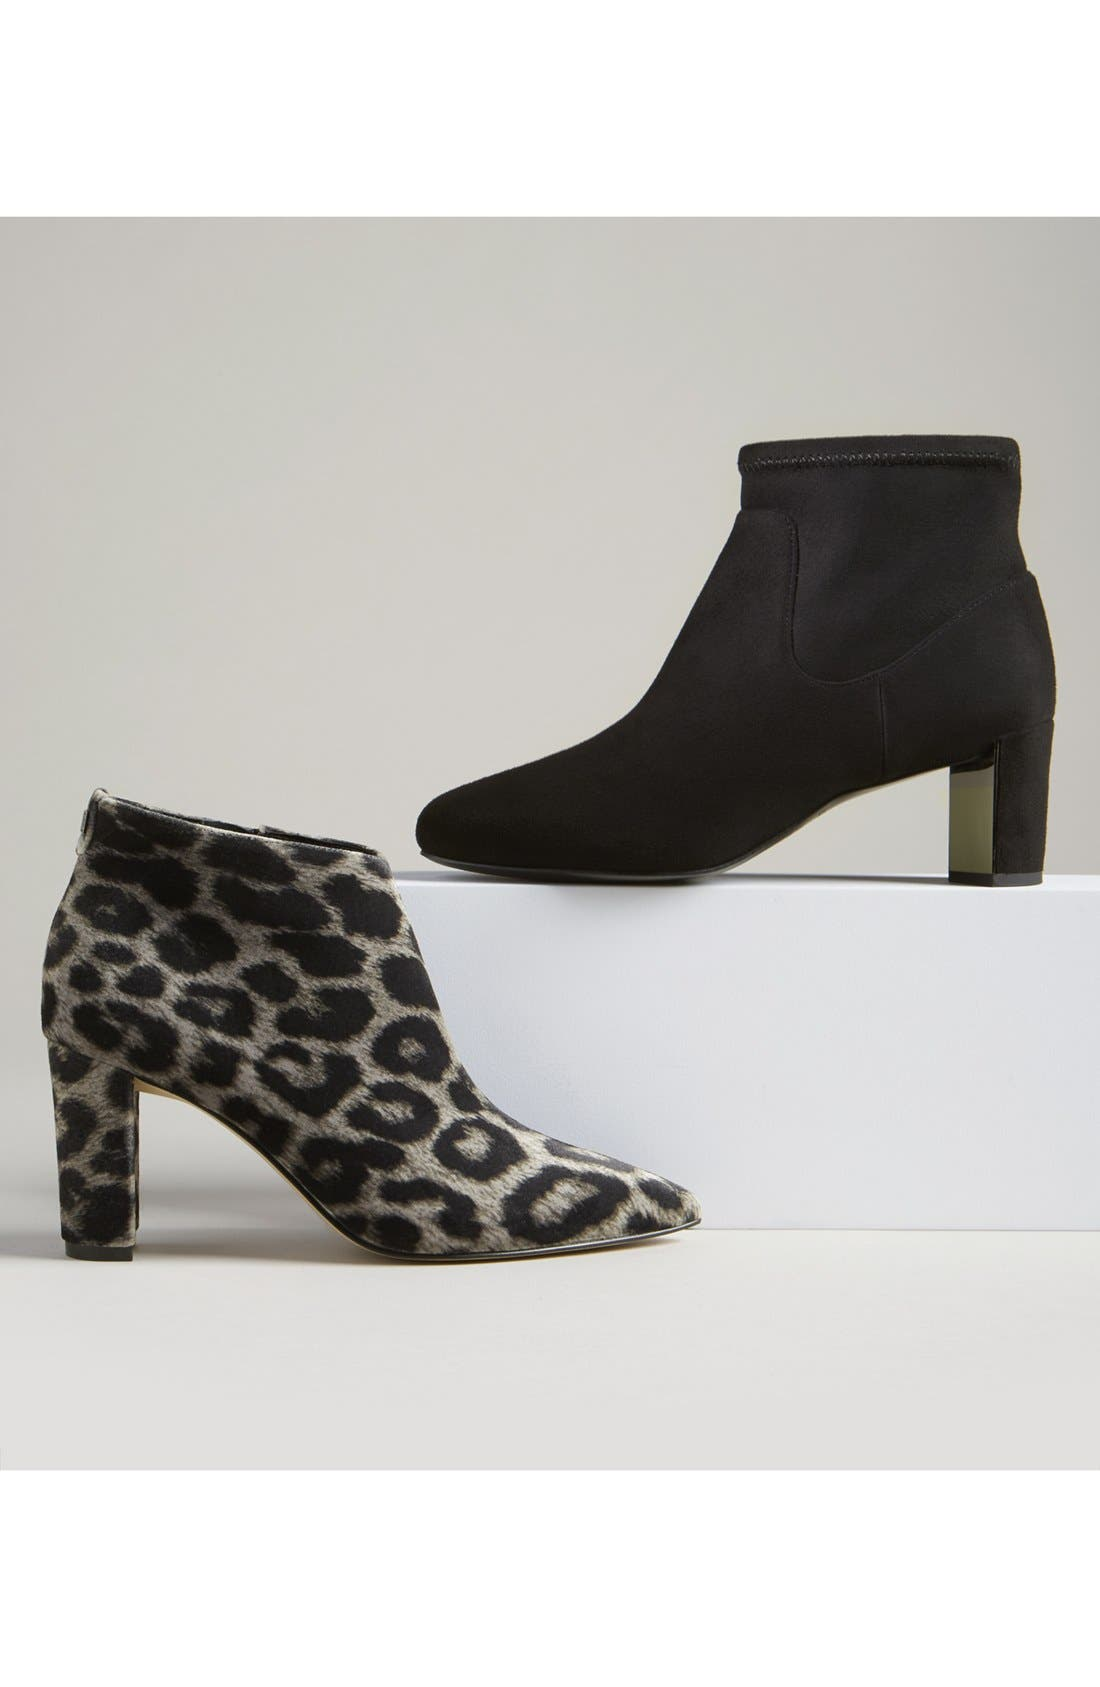 'Lettie' Pointy Toe Bootie,                             Alternate thumbnail 5, color,                             001